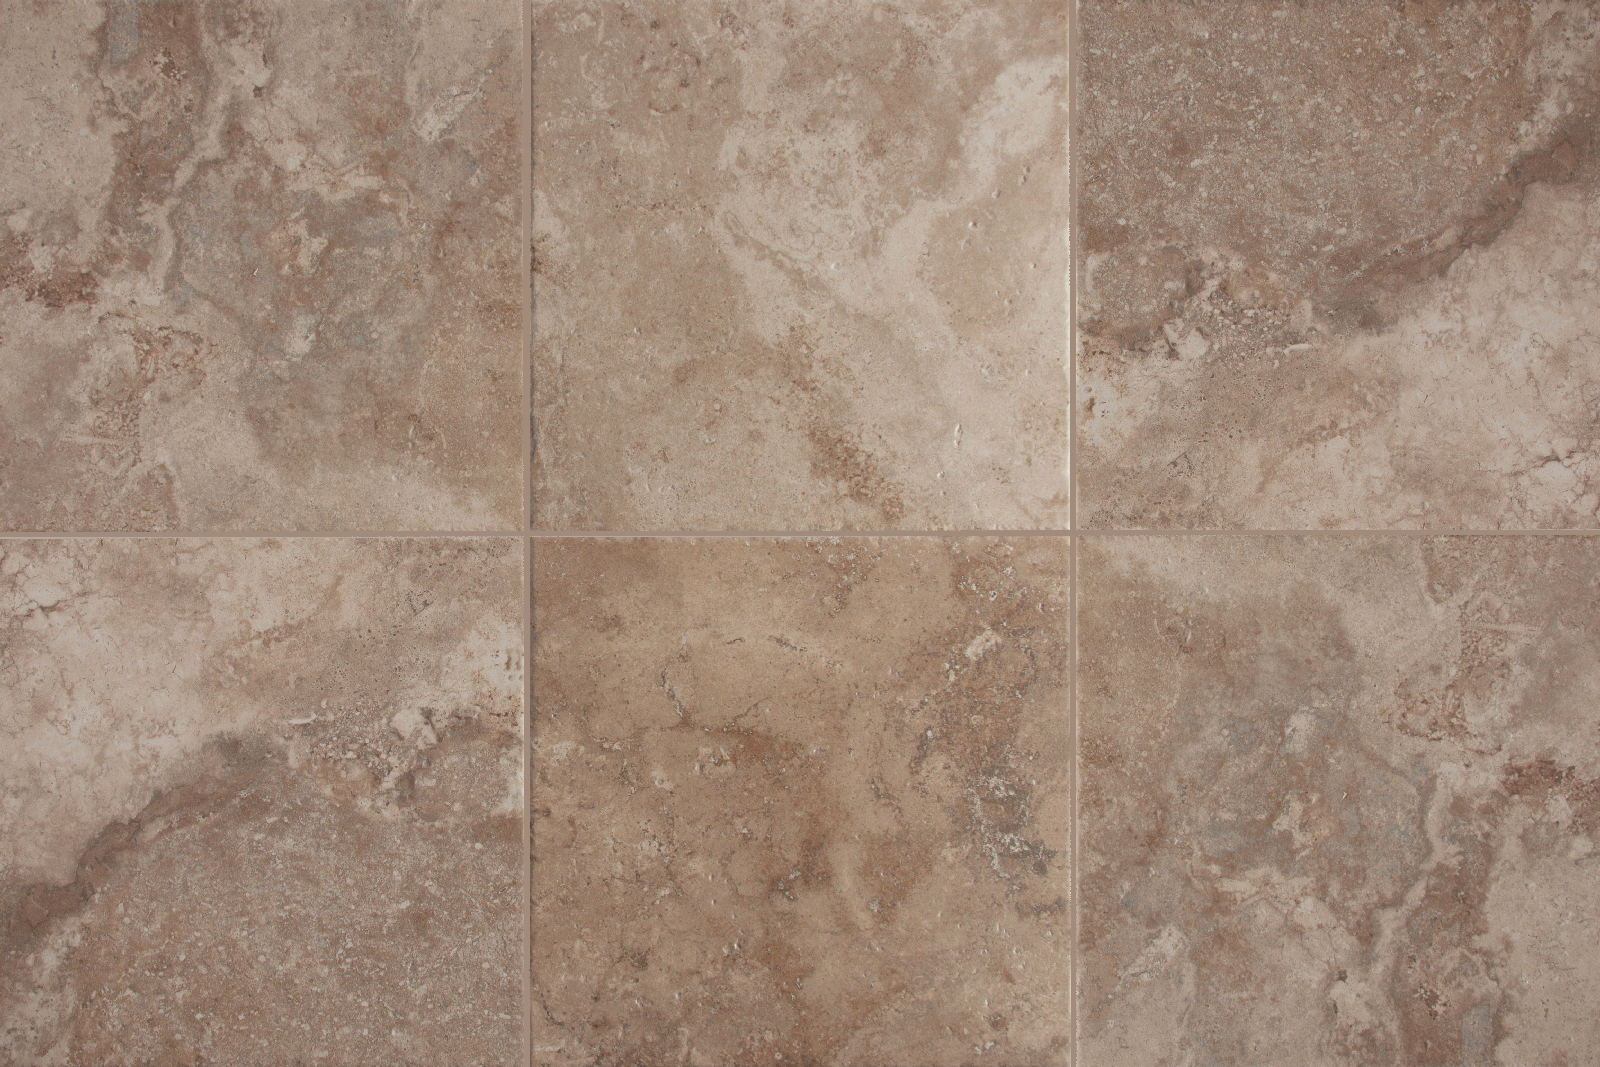 18 Porcelain Tile Tile Design Ideas